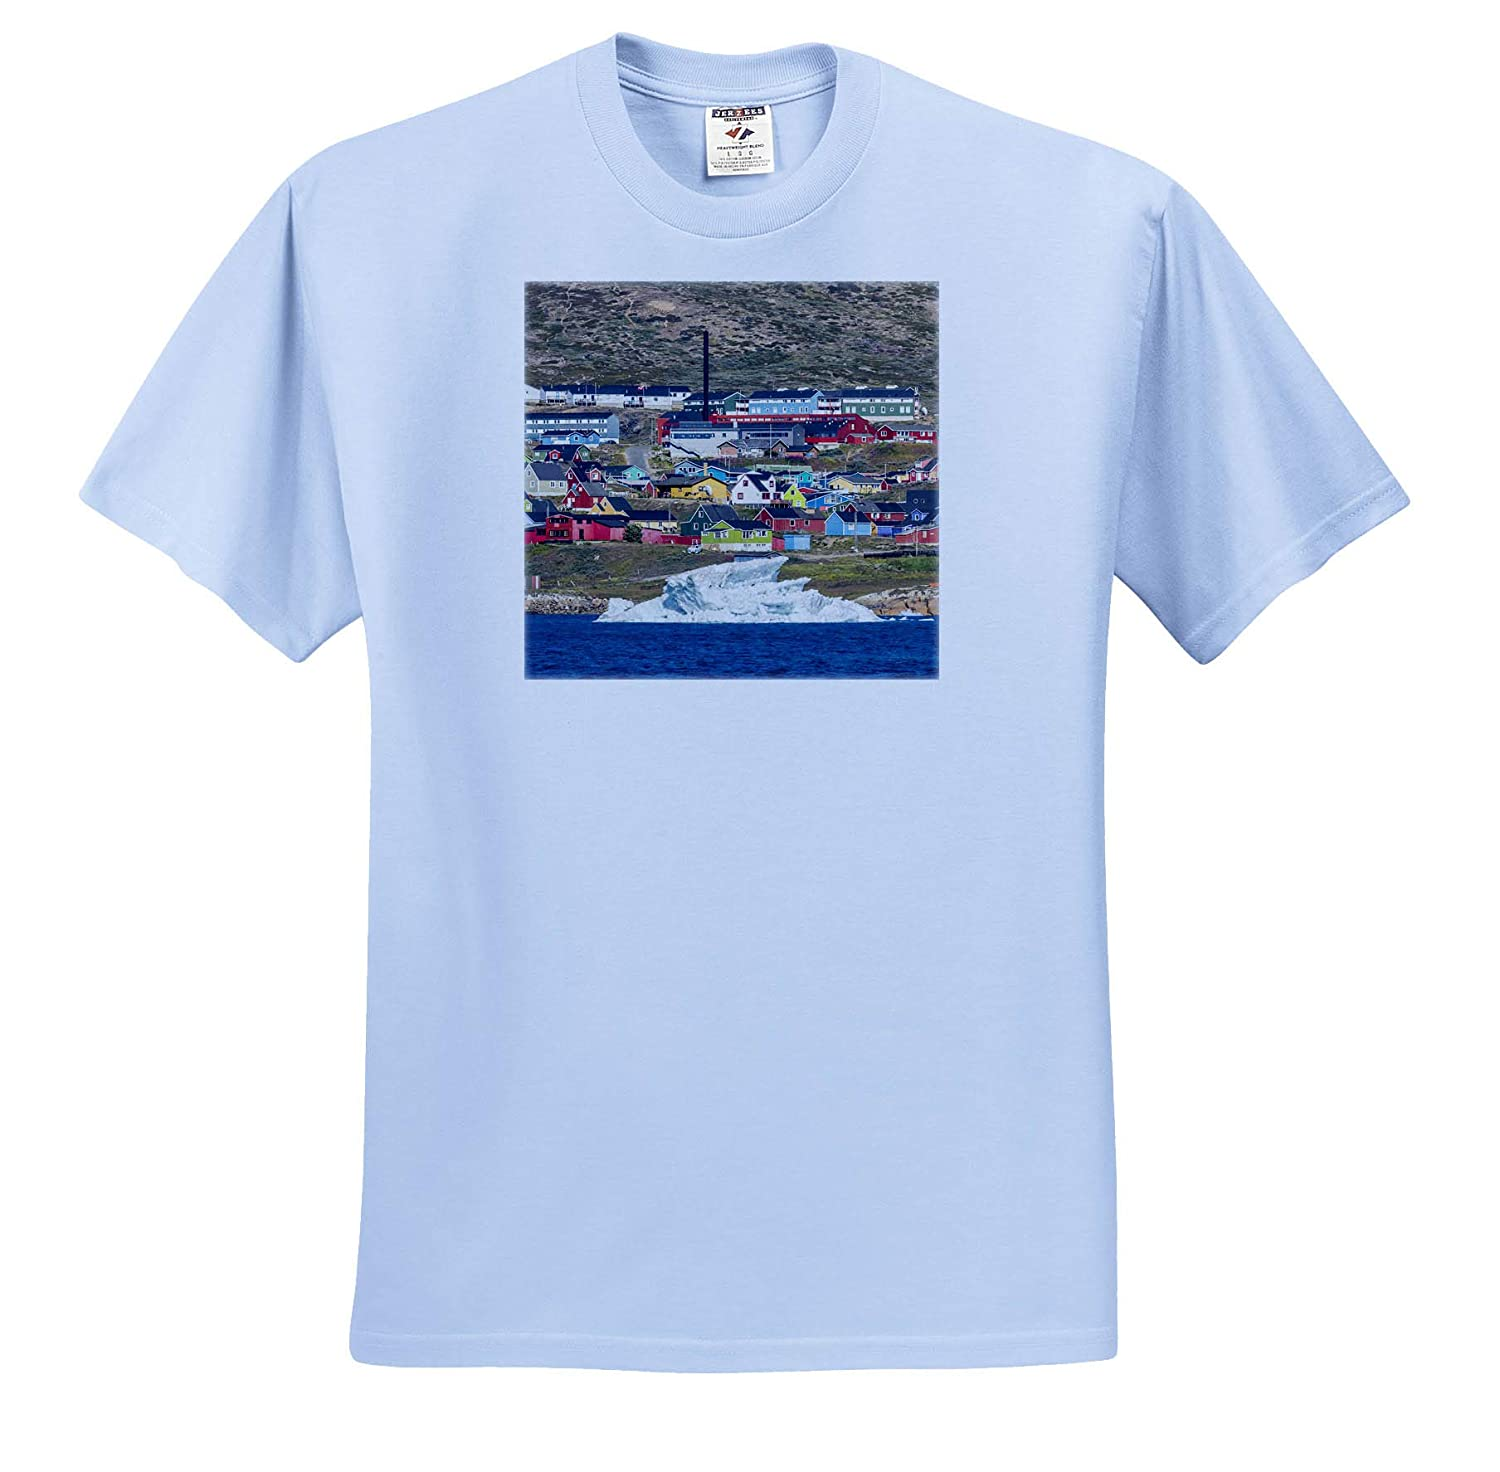 Greenland ts/_313887 3dRose Danita Delimont The Small Town Narsaq in The South of Greenland - Adult T-Shirt XL